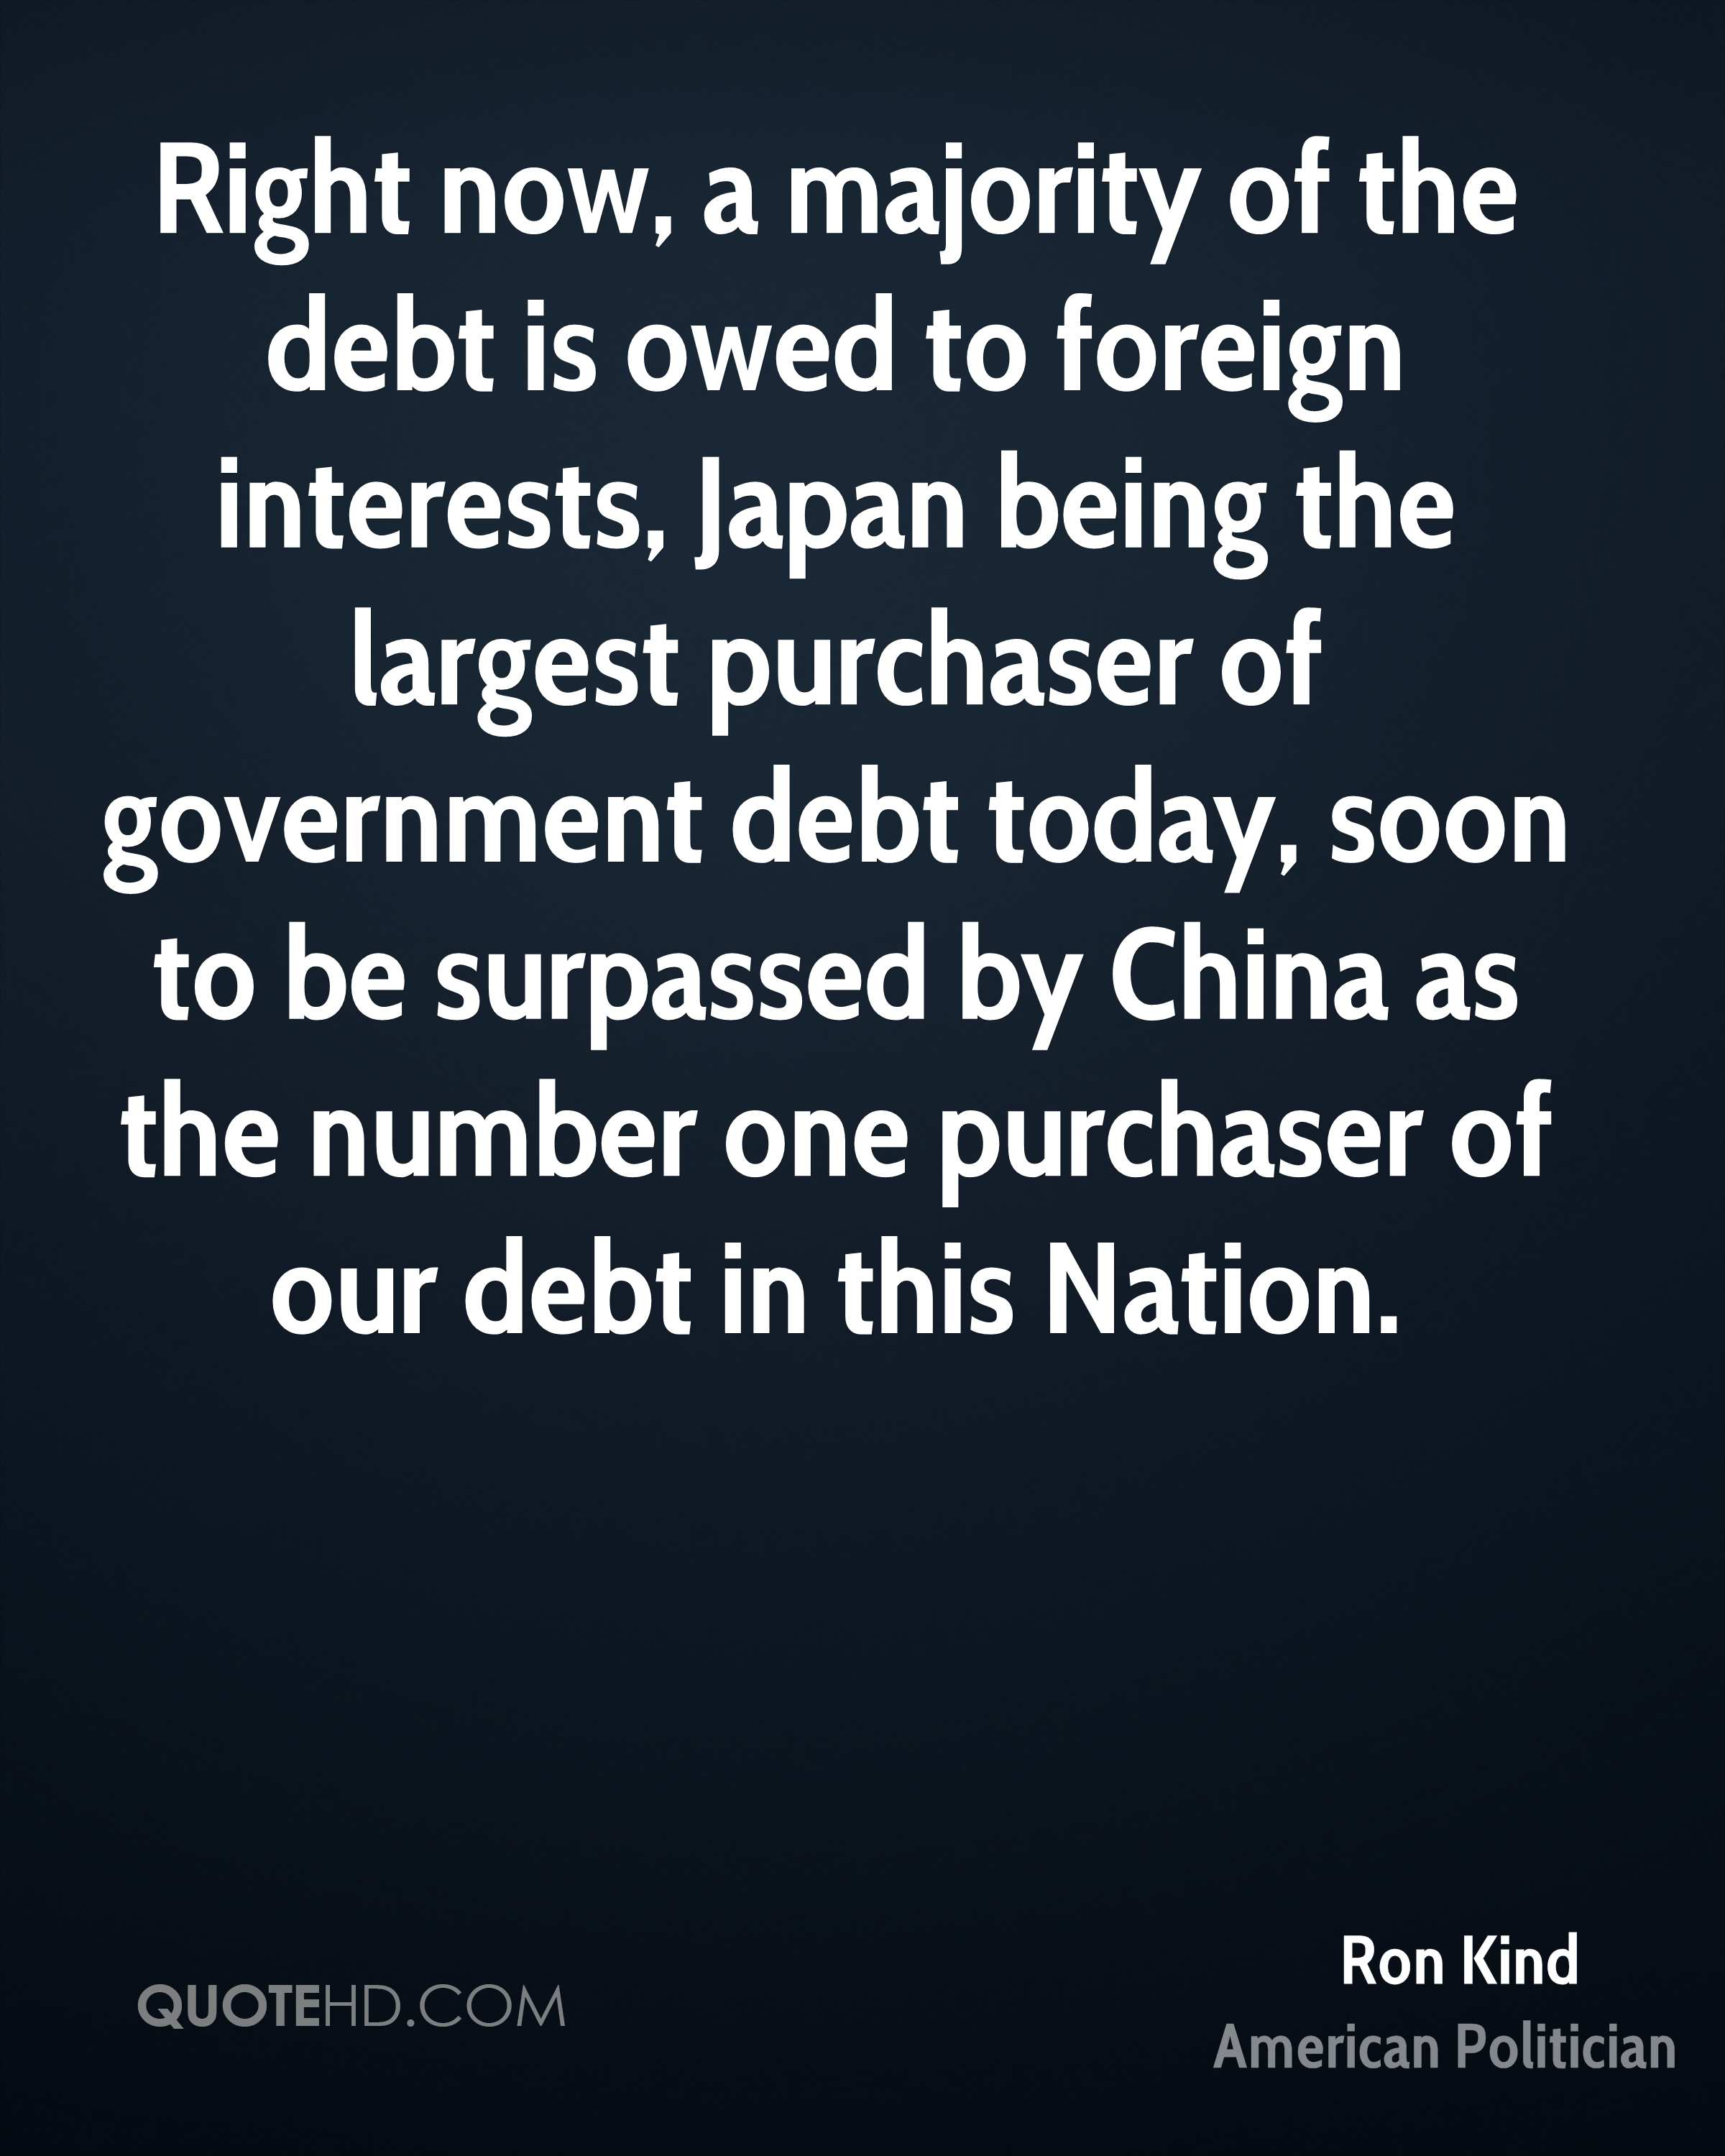 Right now, a majority of the debt is owed to foreign interests, Japan being the largest purchaser of government debt today, soon to be surpassed by China as the number one purchaser of our debt in this Nation.